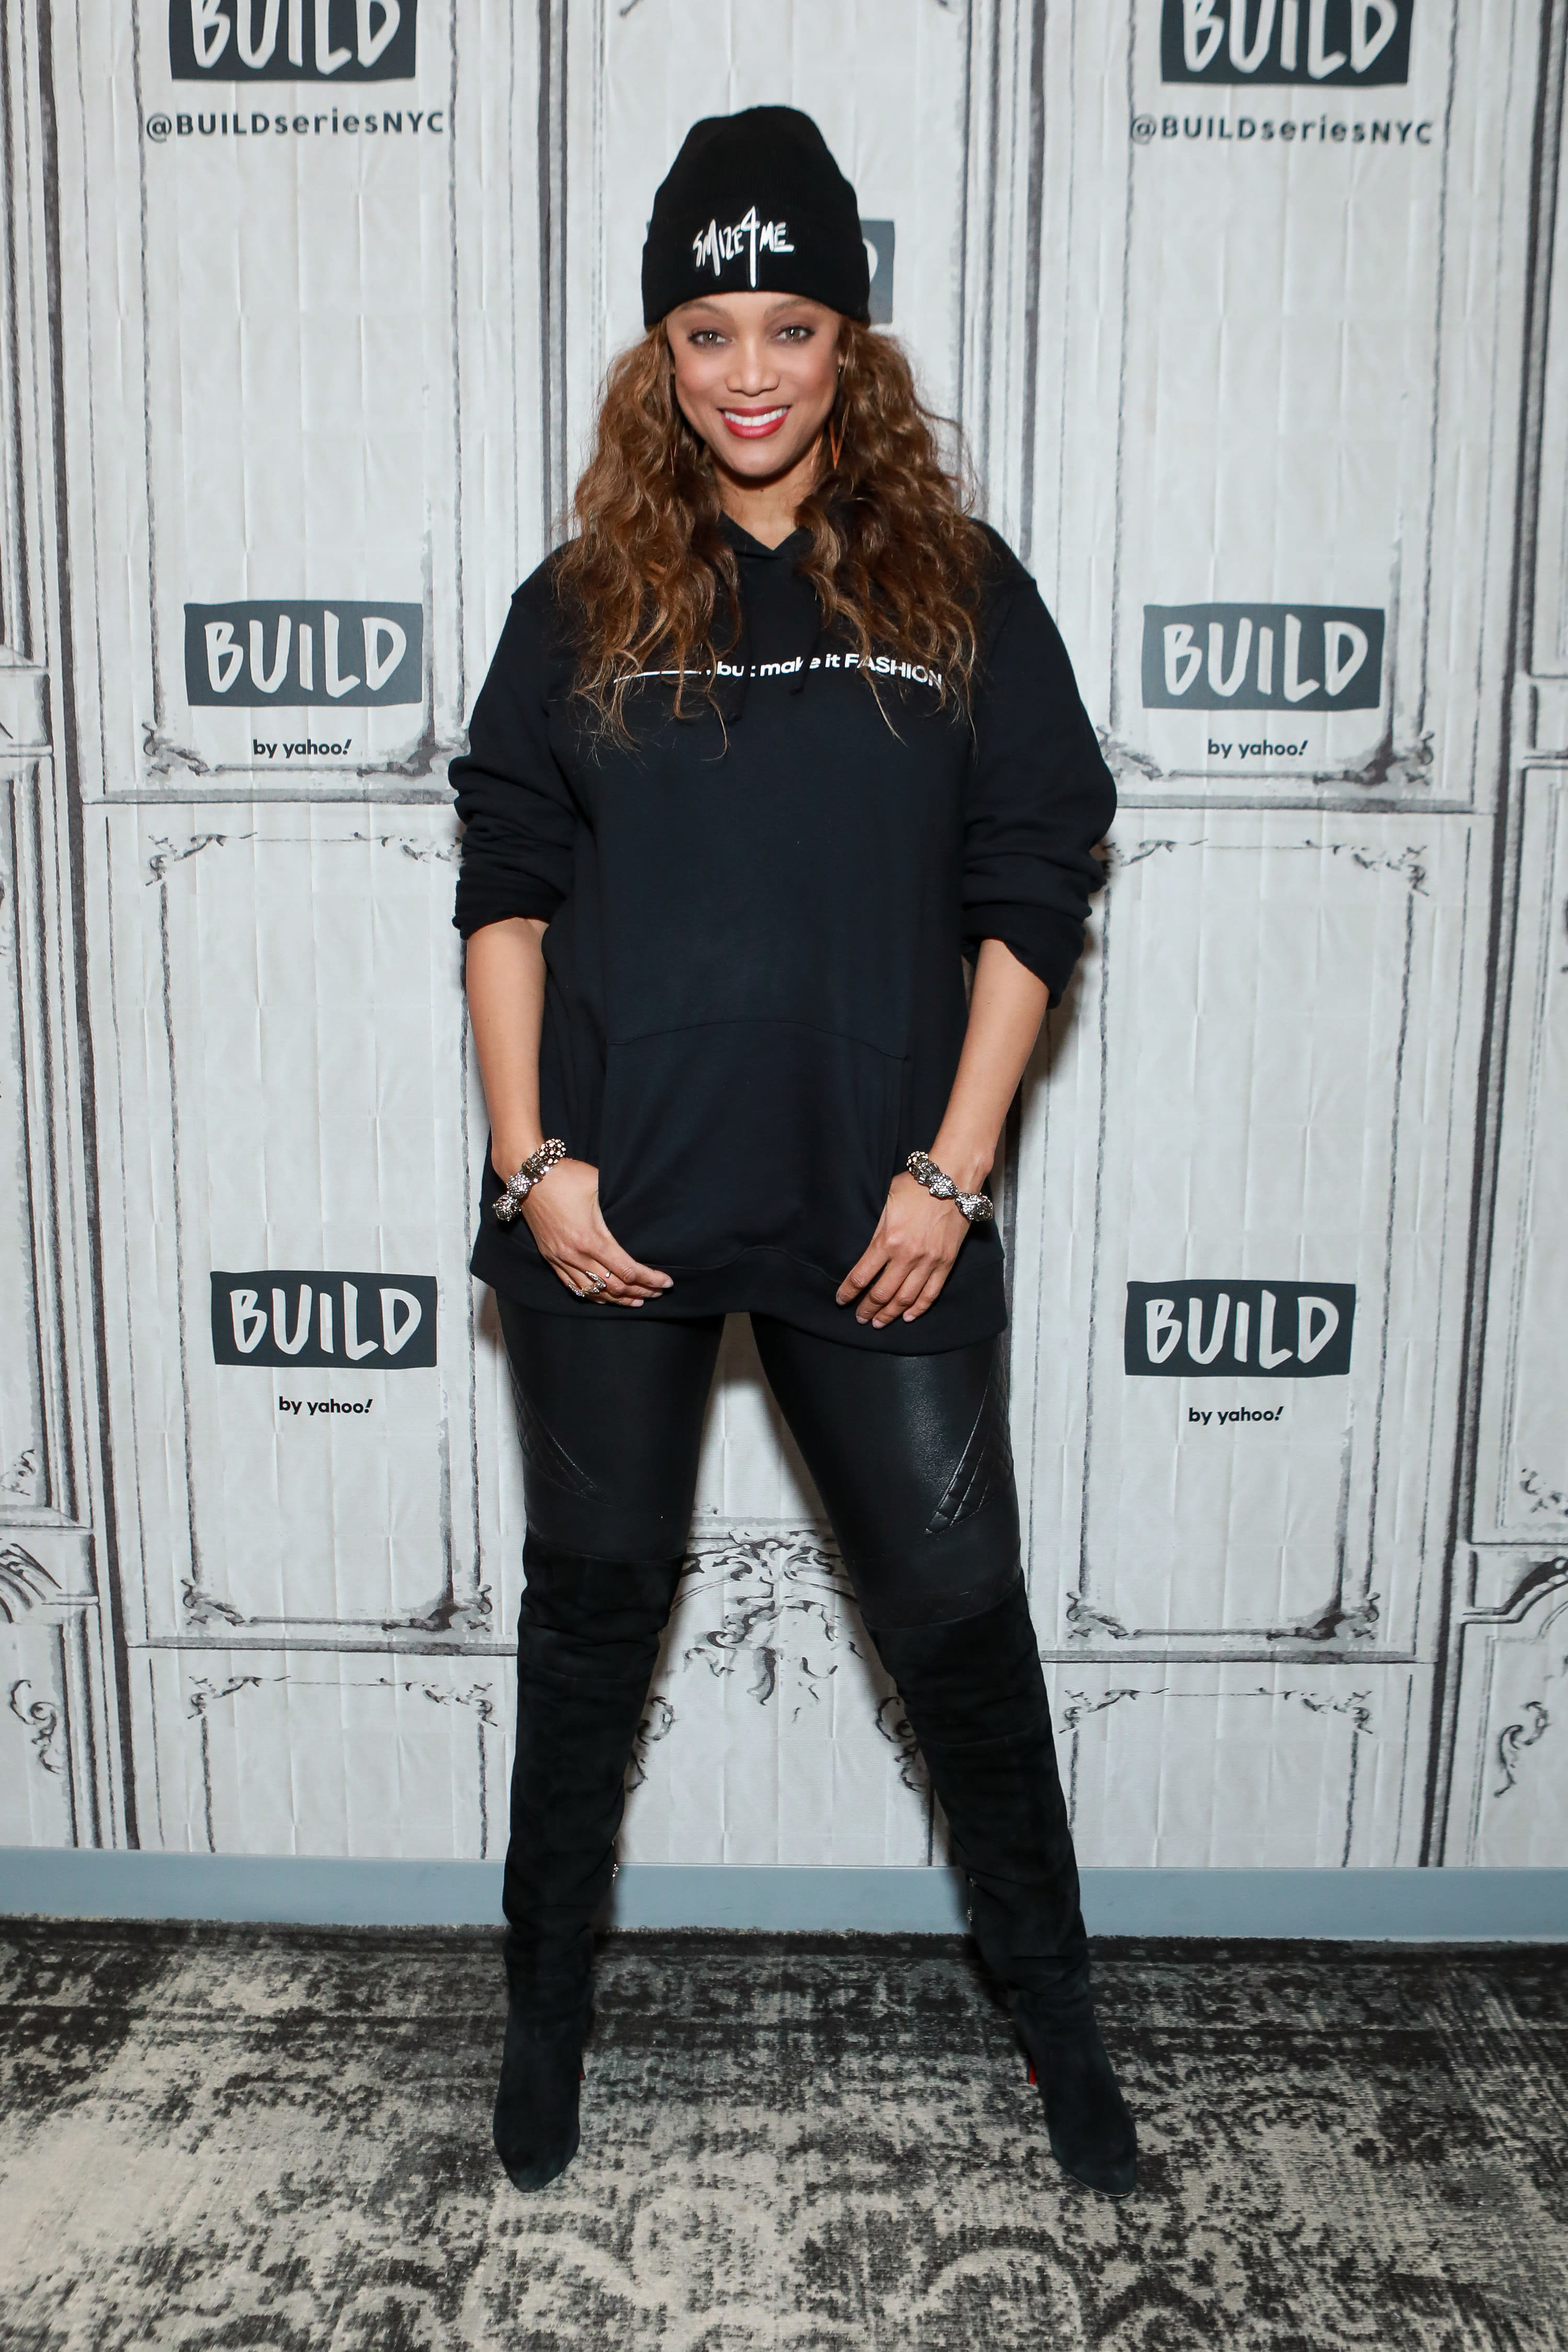 Tyra wears a beanie and oversized sweatshirt with leggings and high heeled boots.